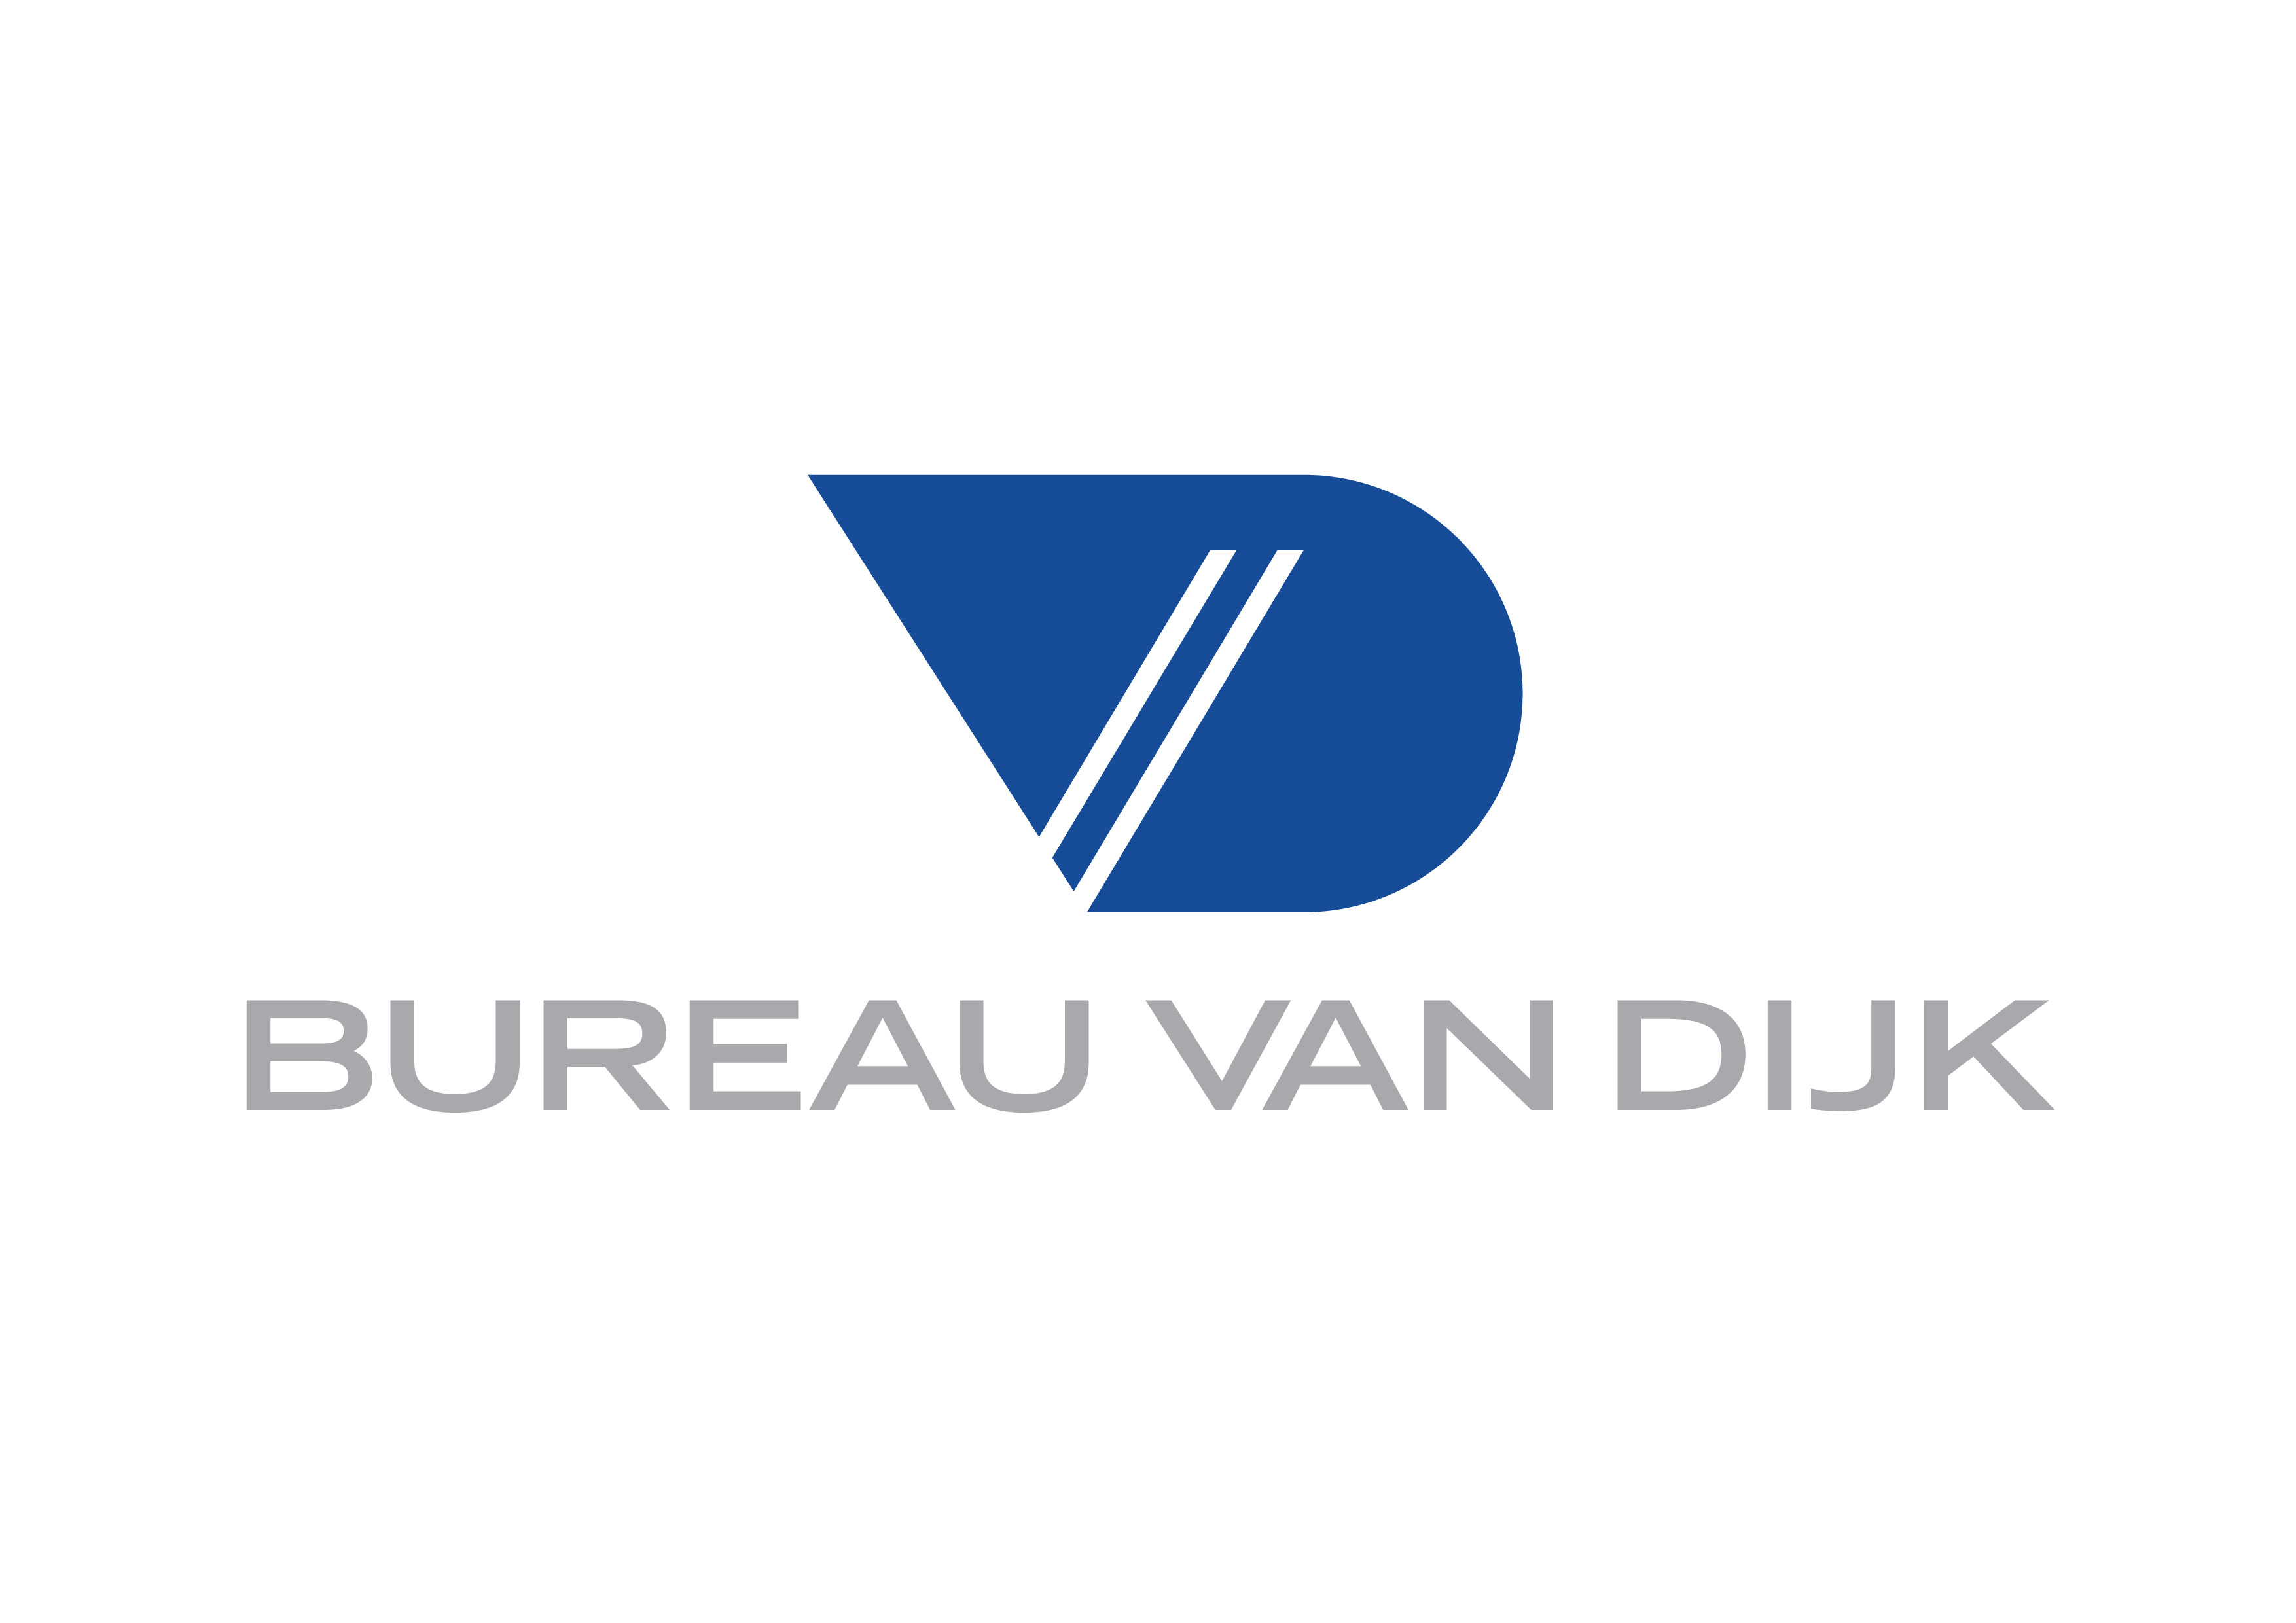 bureau van dijk expands and enriches its orbis company